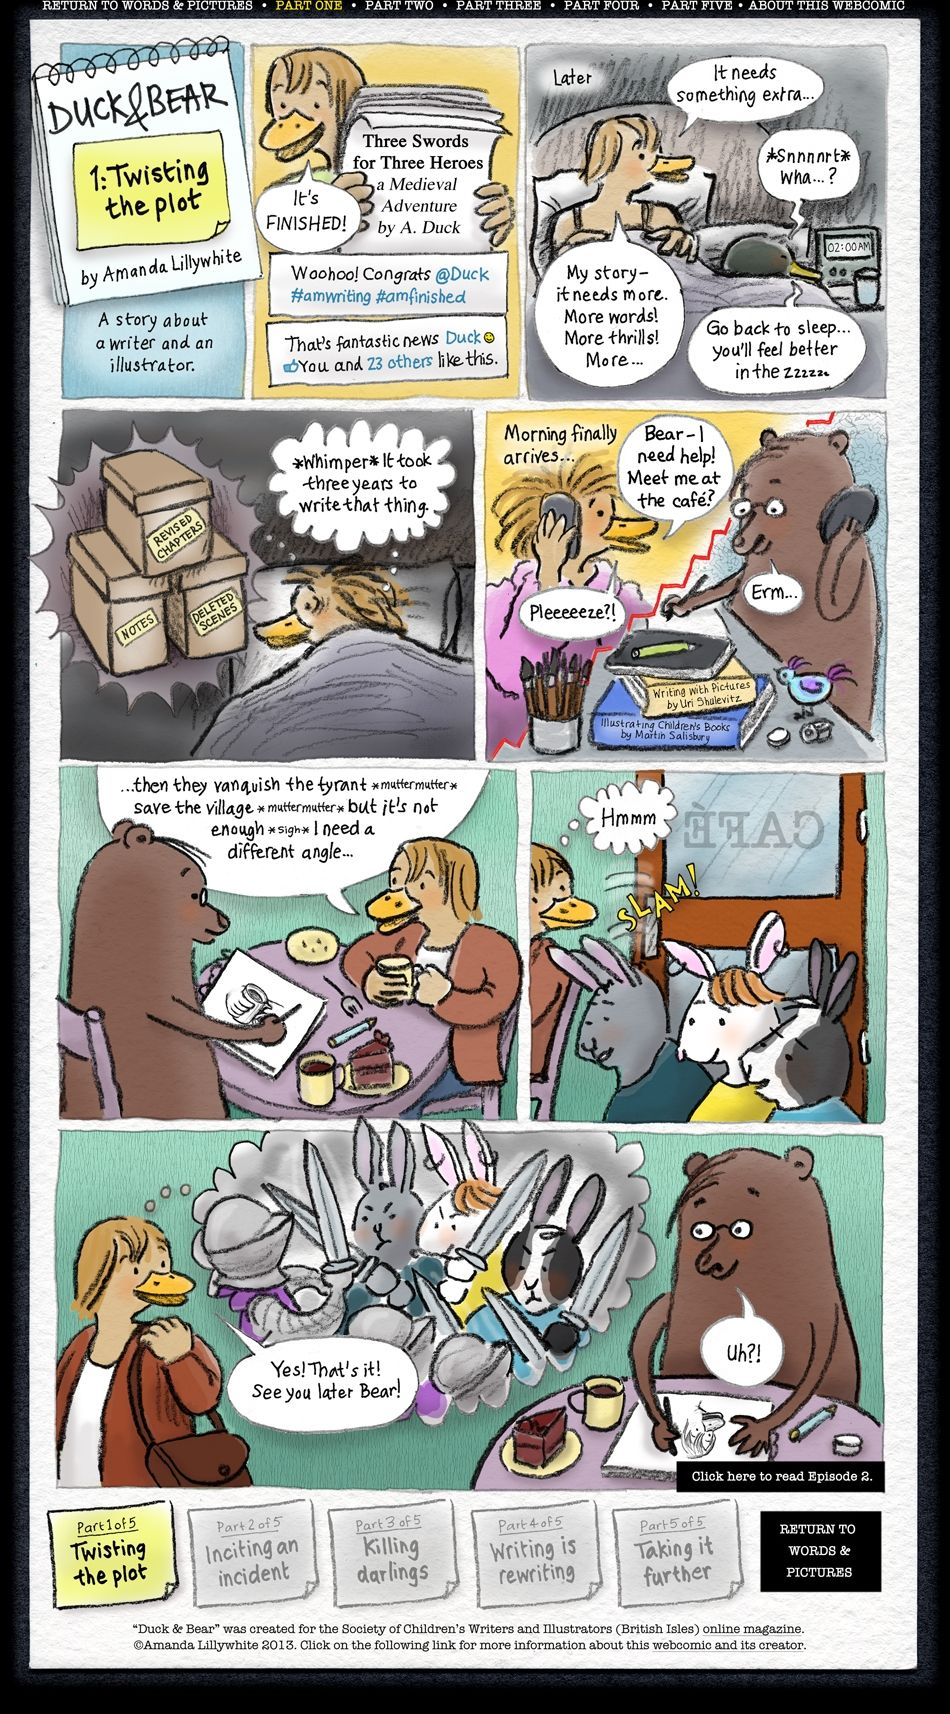 A webcomic about a writer and an illustrator. Go to http://www.crazypanda.com/duckbear1of1.html for full image.